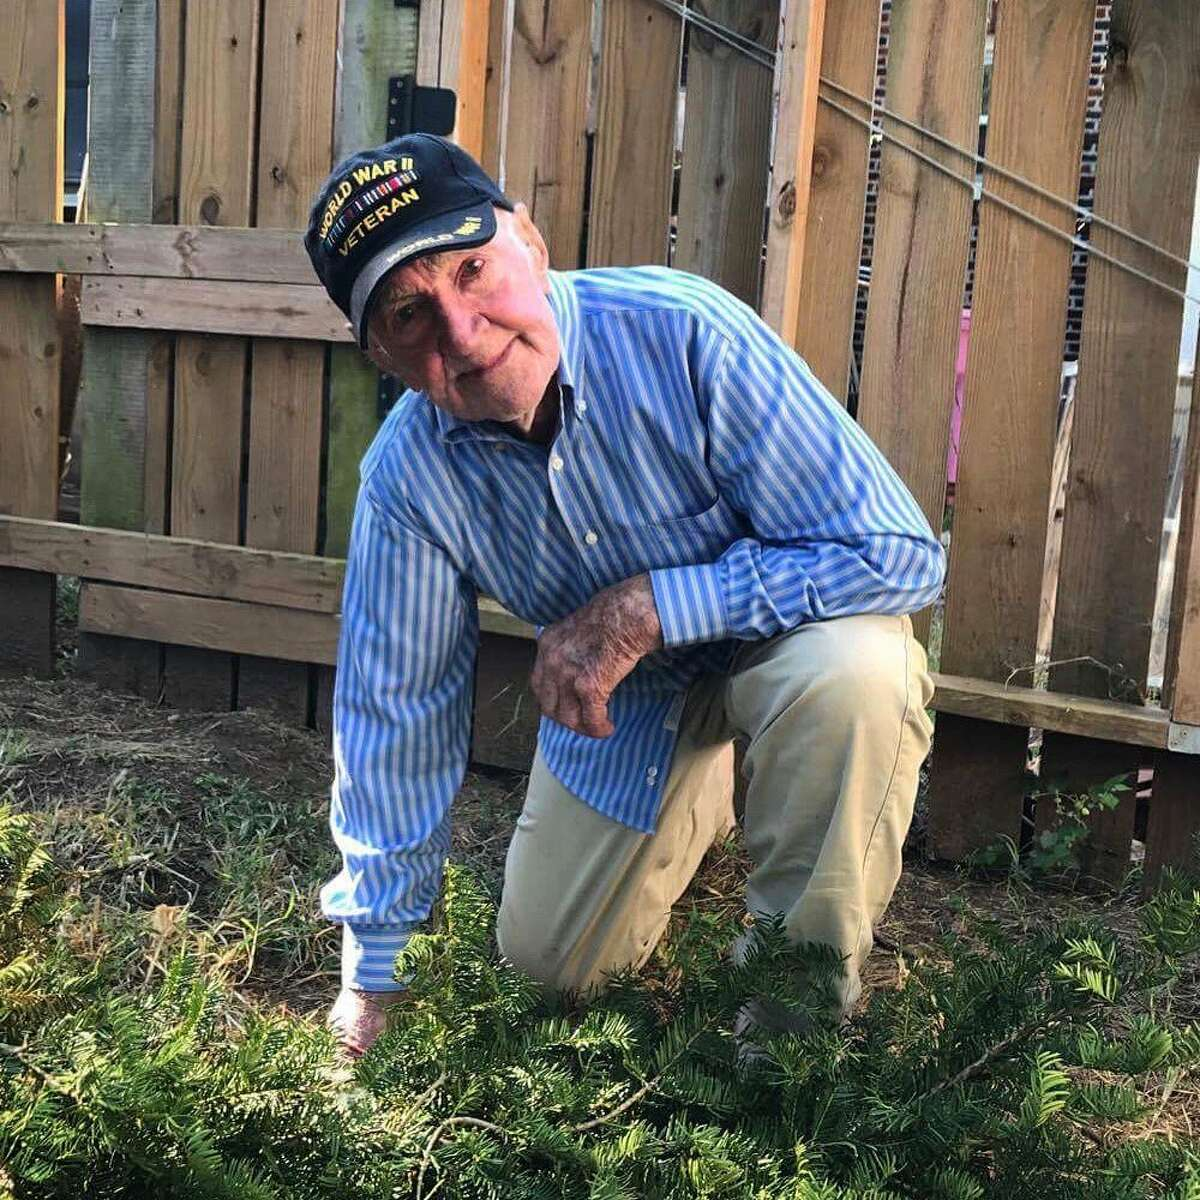 97-year-old John Middlemas kneels in a photo originally posted by his grandson Brennan Gilmore on Sunday, September 24, 2017.